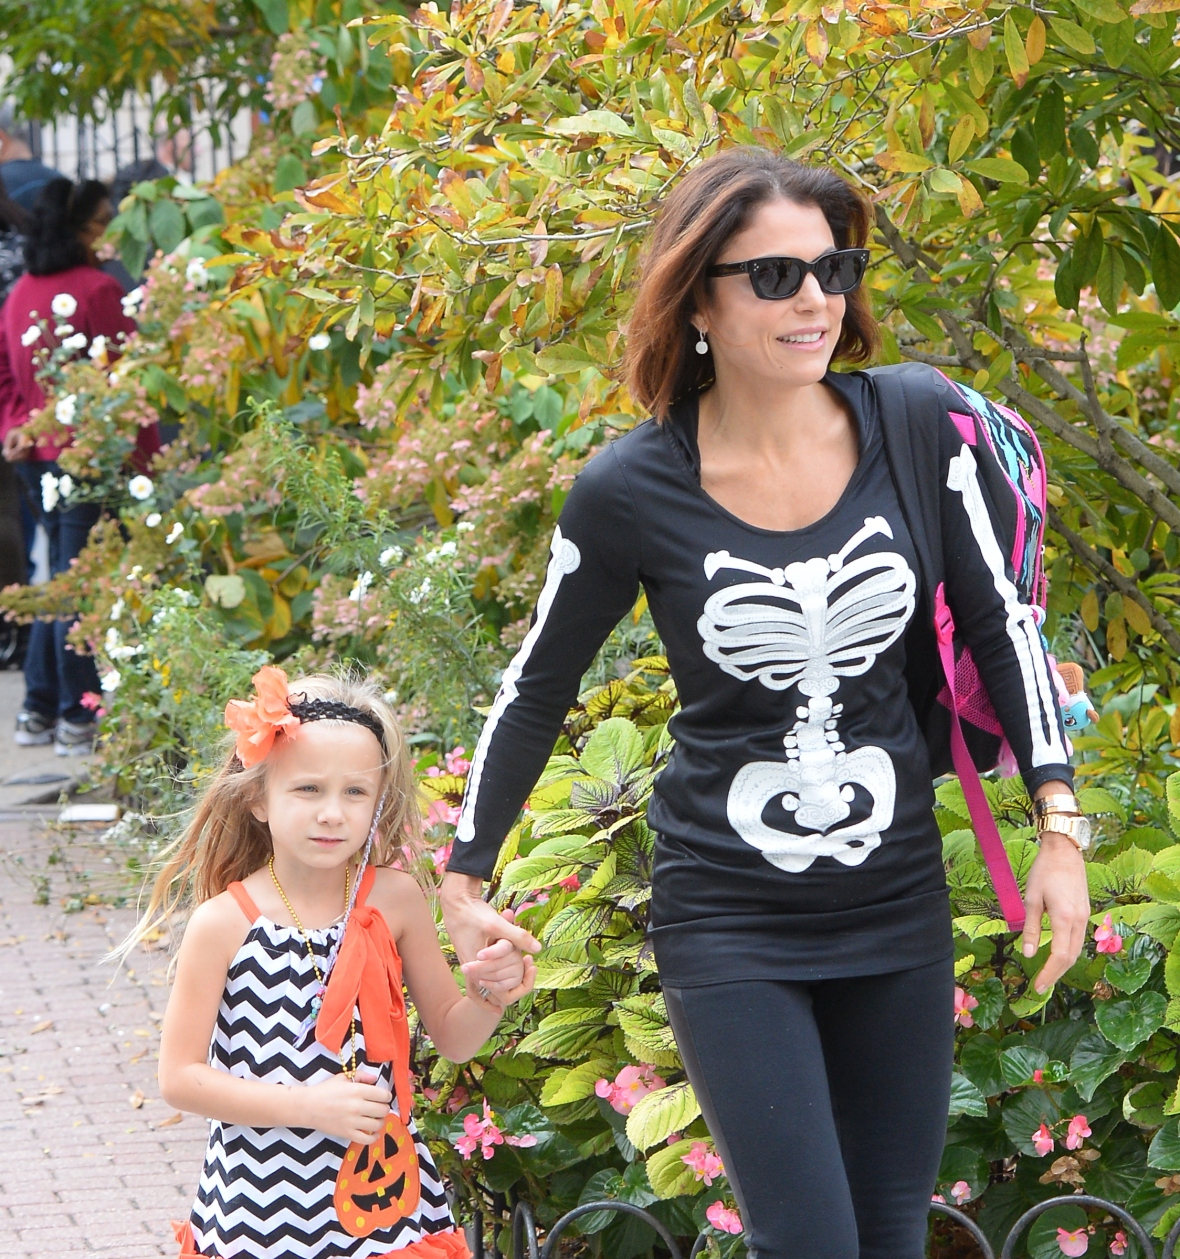 bethenny frankel and daughter bryn hoppy october 2015 getty